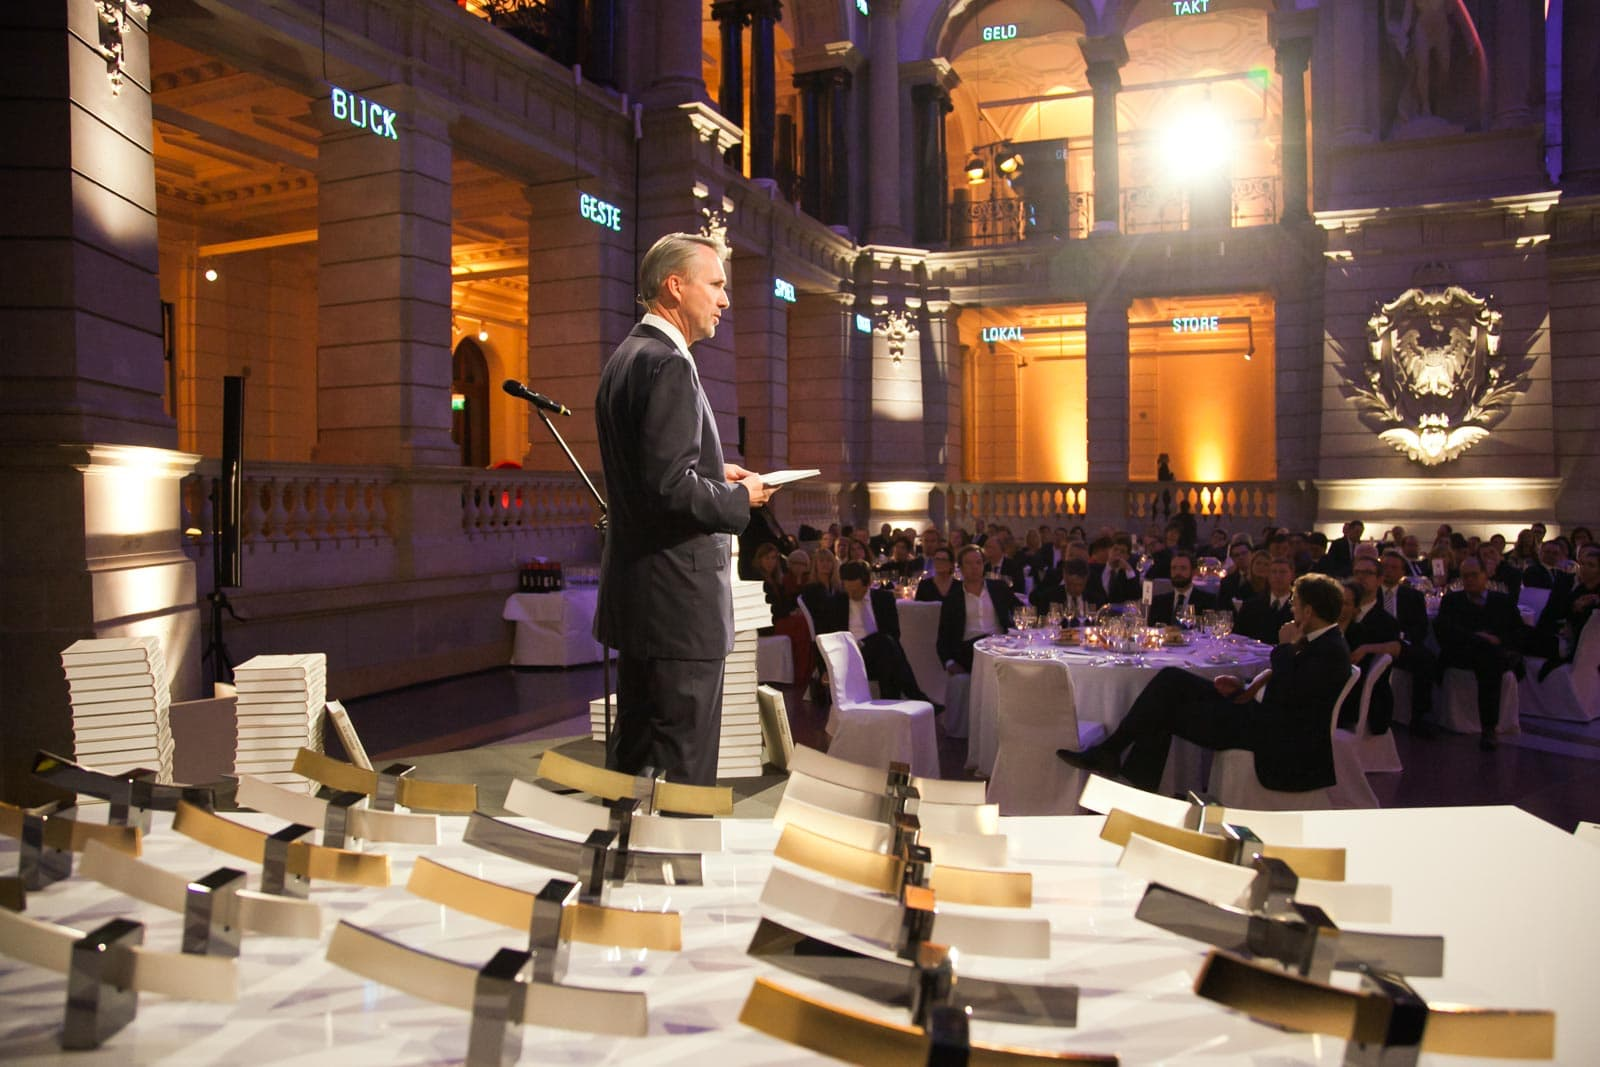 eventfotograf-berlin-econ-award-23.jpg